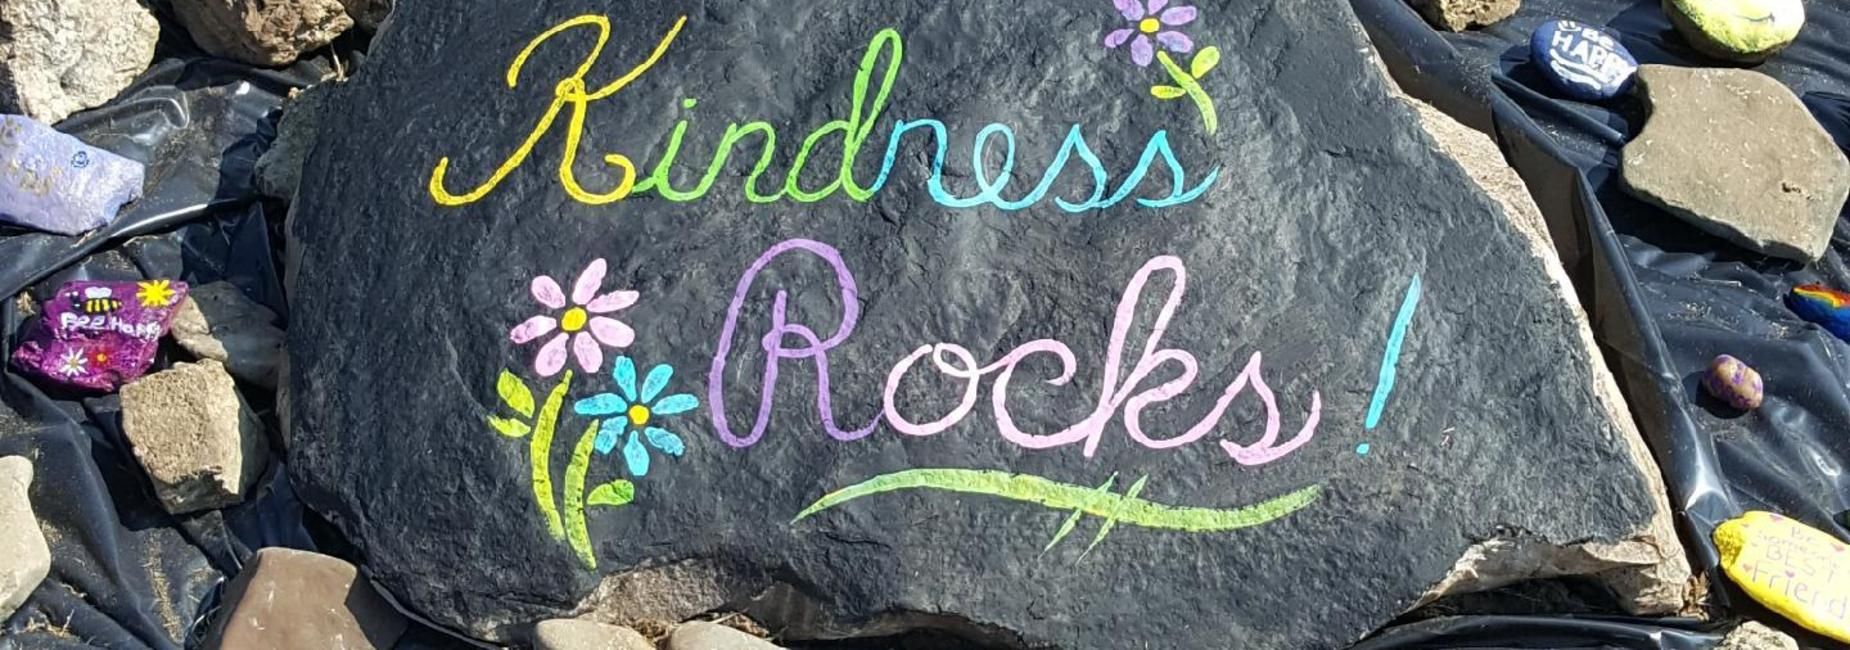 Large rock painted by the RVES staff for the centerpiece in the Kindness Rocks Garden project.